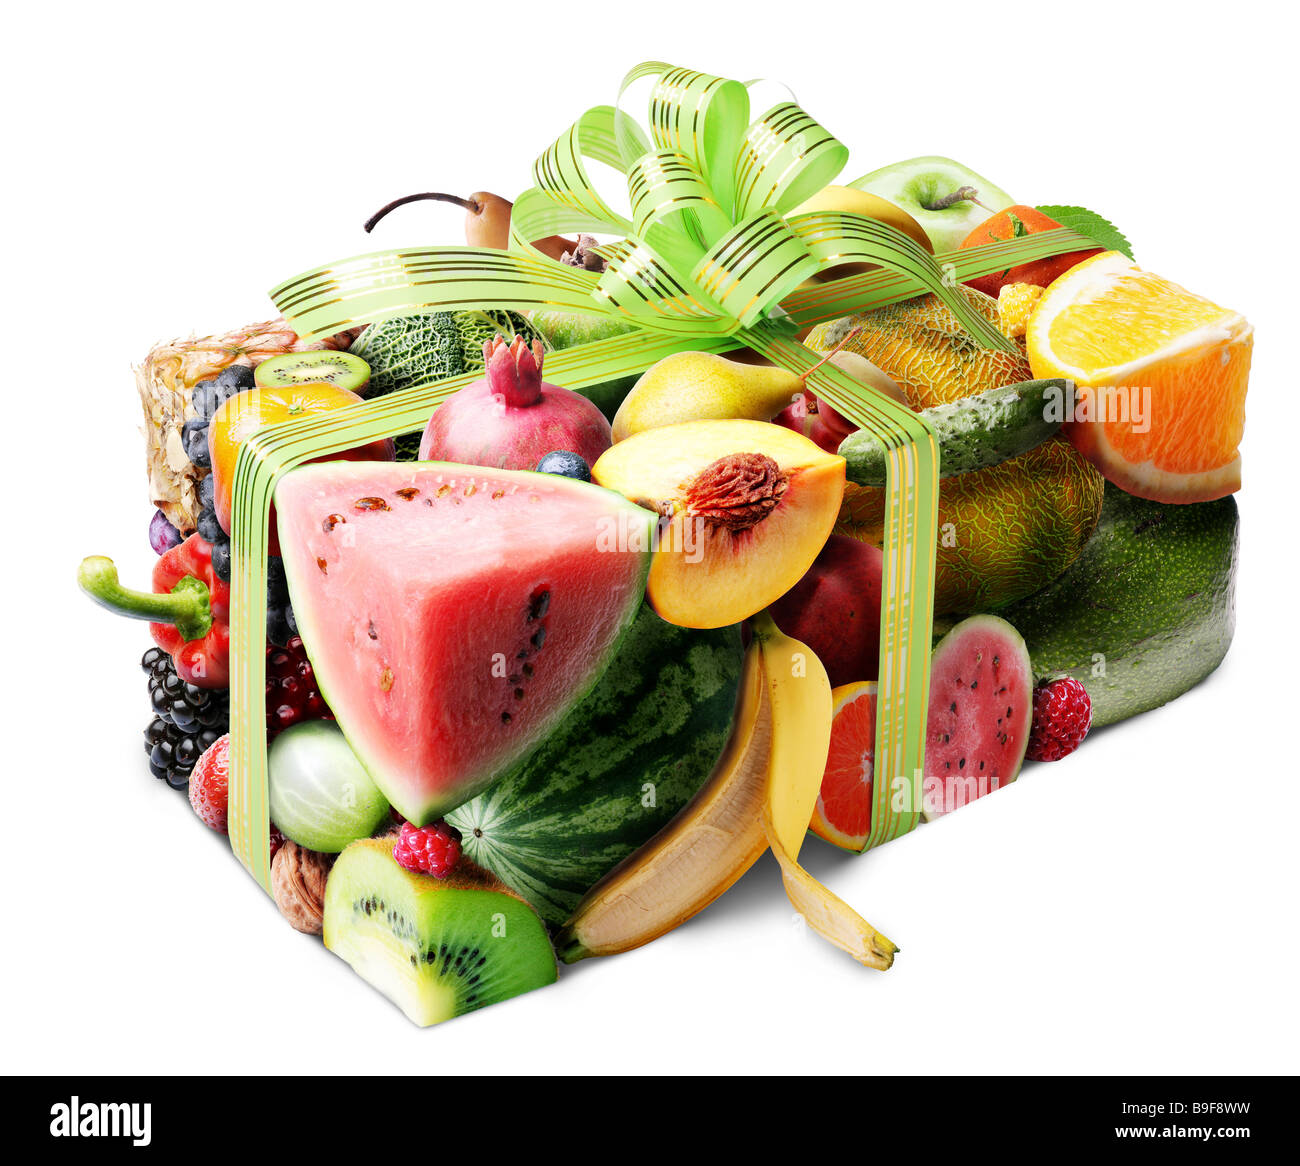 Fruit gift - Stock Image